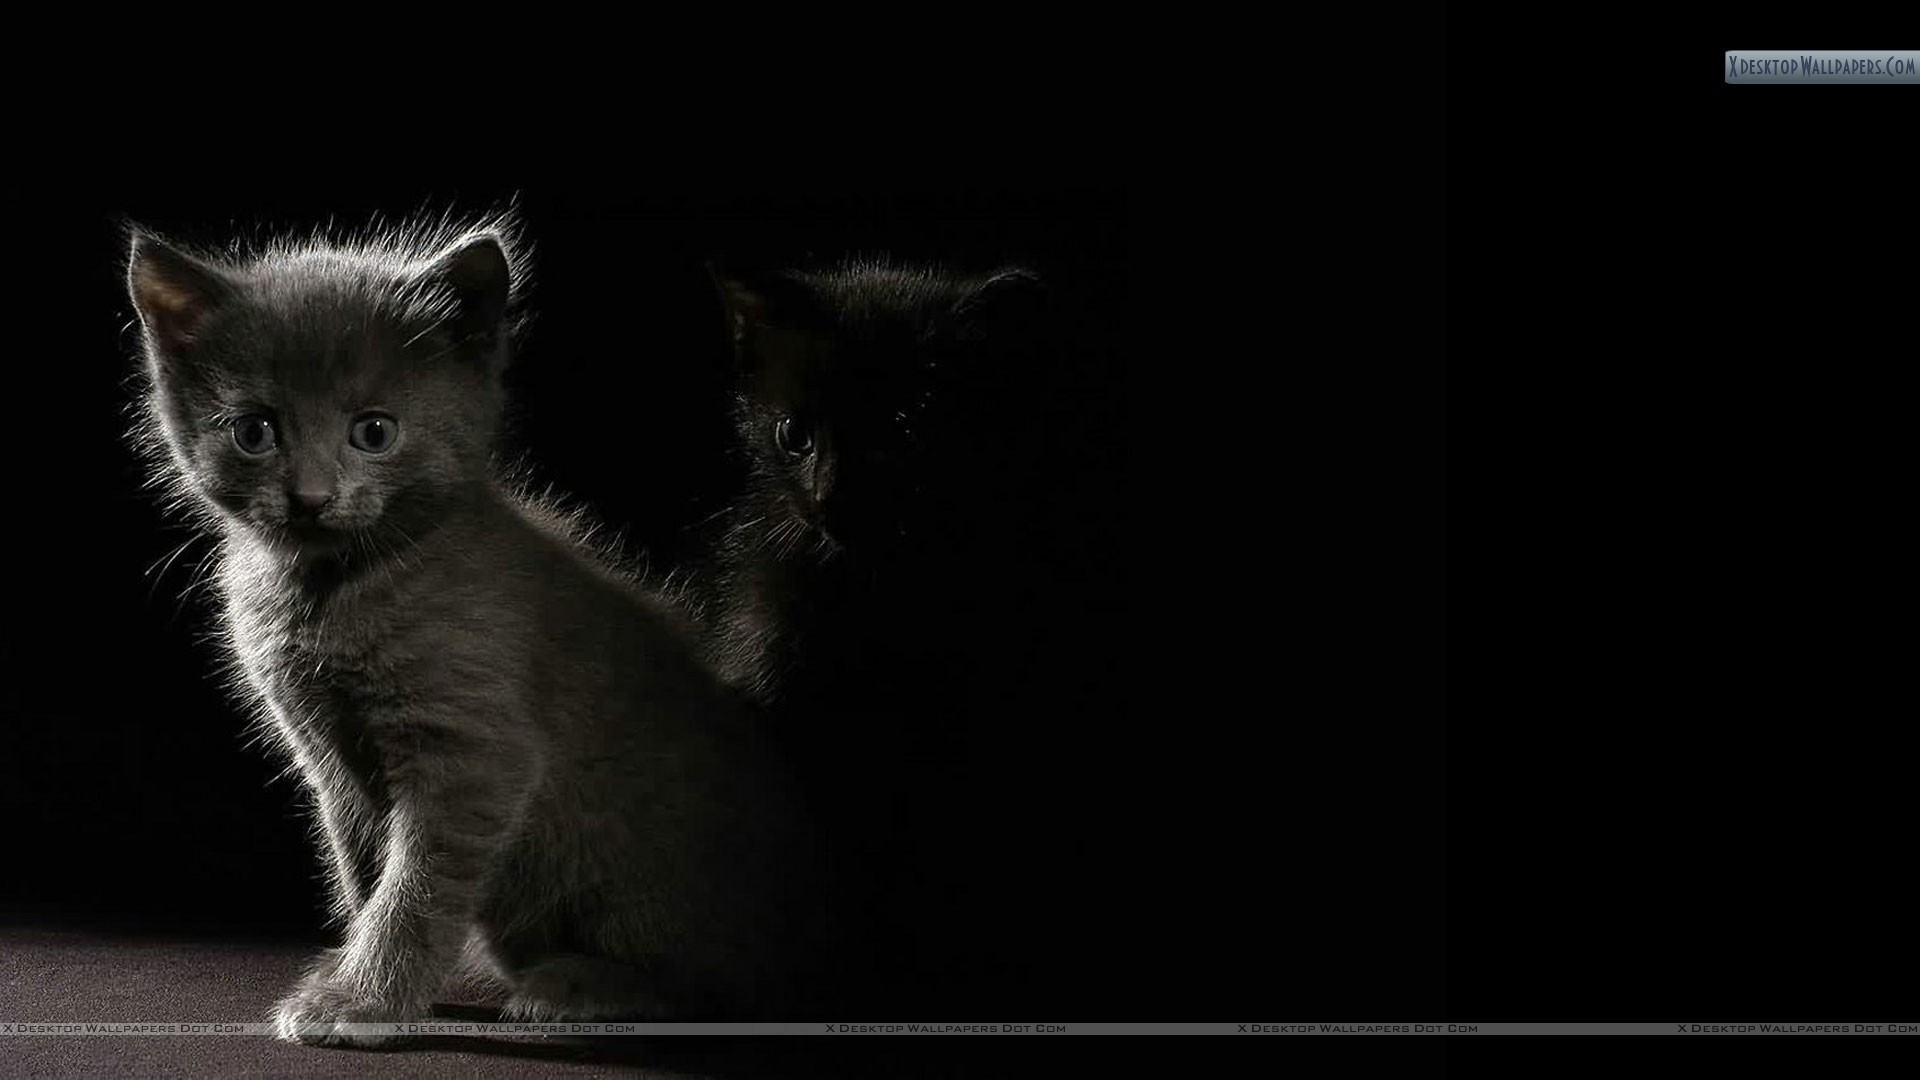 Cat In Dark Shadow Wallpaper